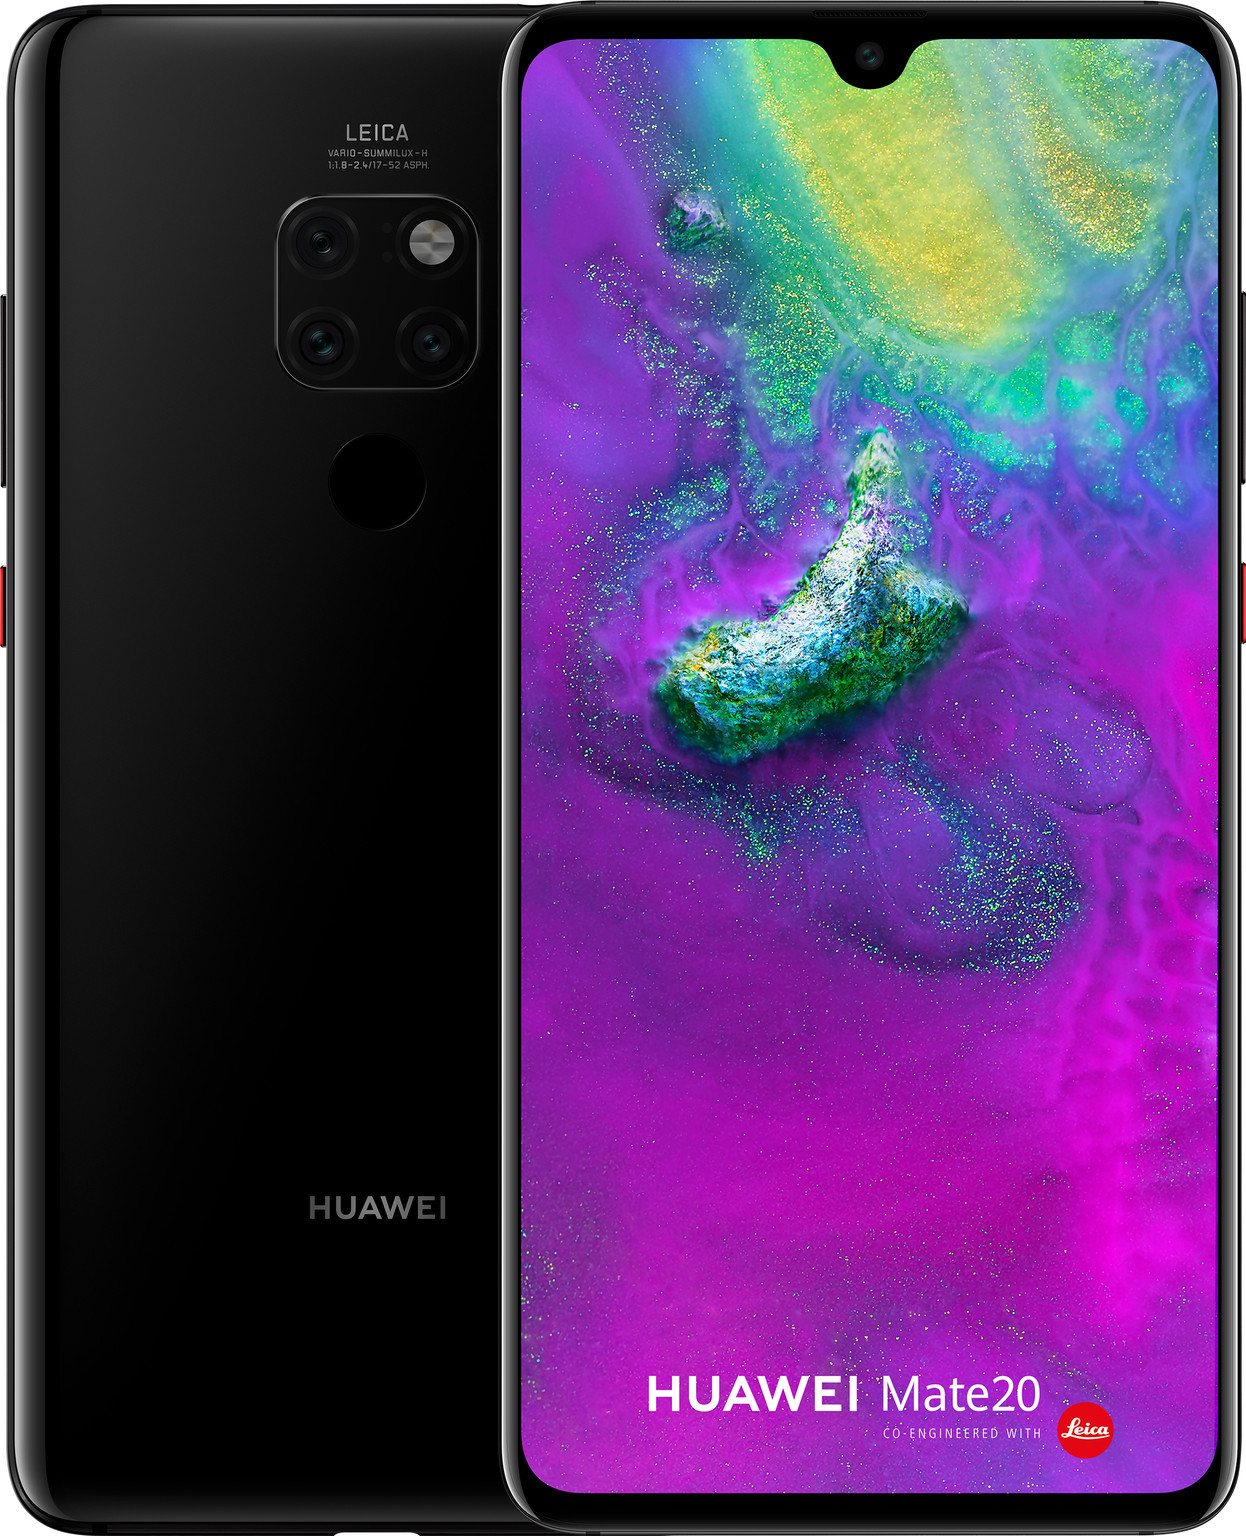 GSM Huawei Mate 20 / 6.53'' IPS LCD / Kirin 980 / Mali-G76 MP10 / Triple Camera / 4000mAh / Android 9.0 /